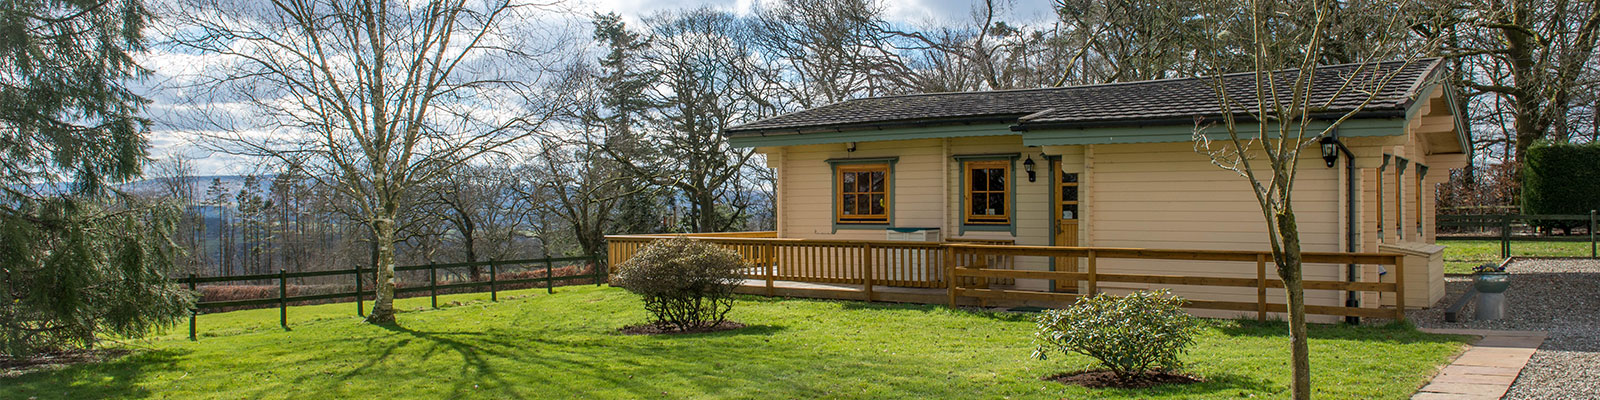 Stable Lodge, Loch Lomond